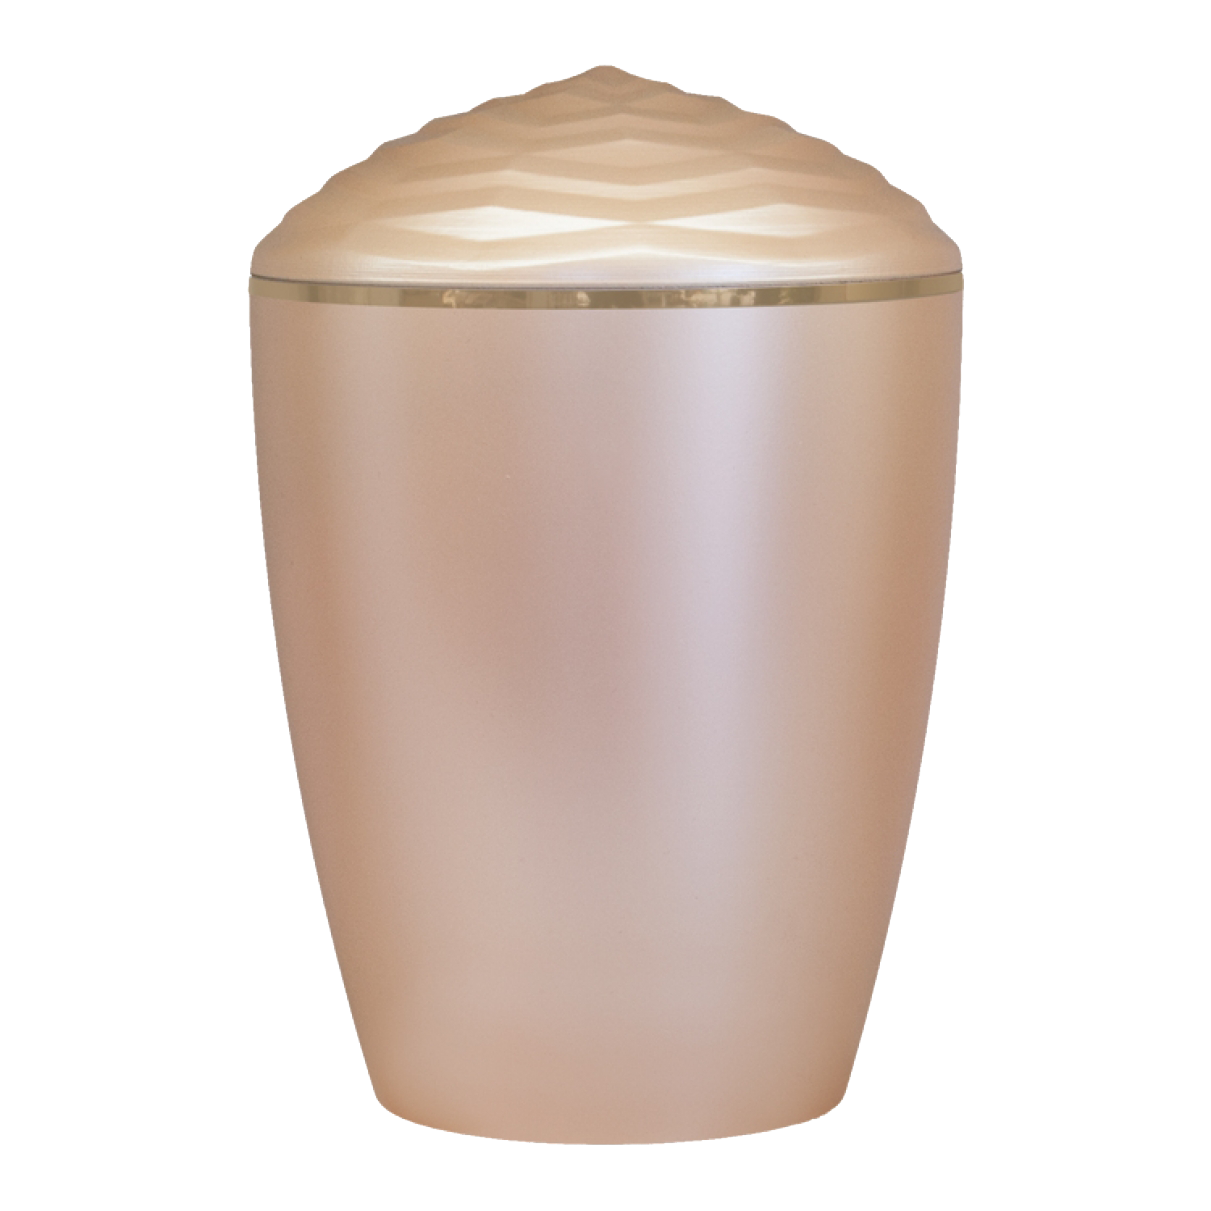 Forest Gold Band Bio Cremation Urn – Beige